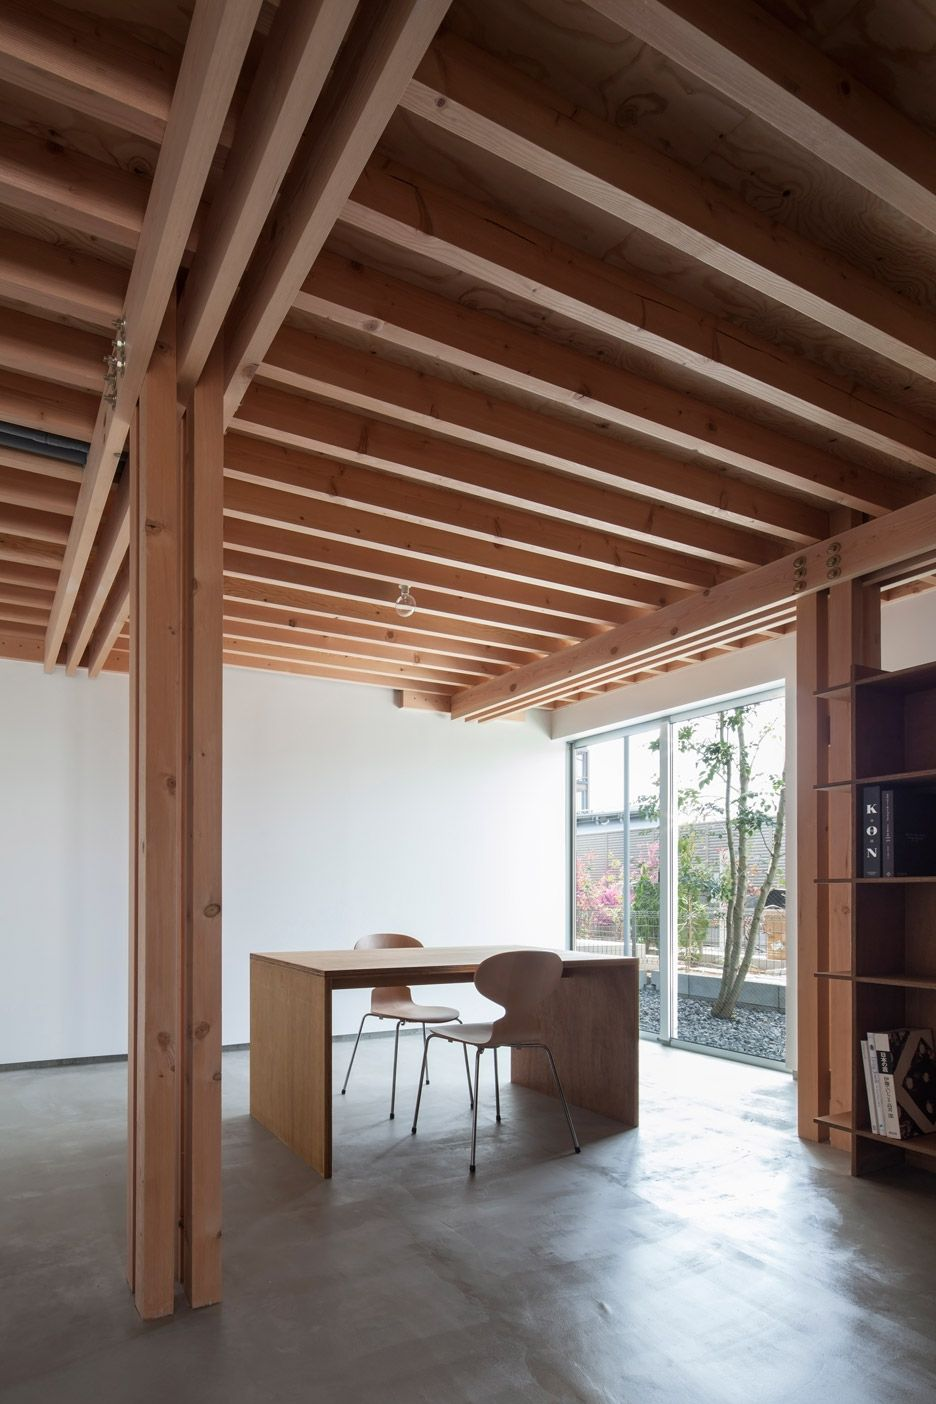 FT Architects' 4 Columns house features a timber frame | Concrete ...